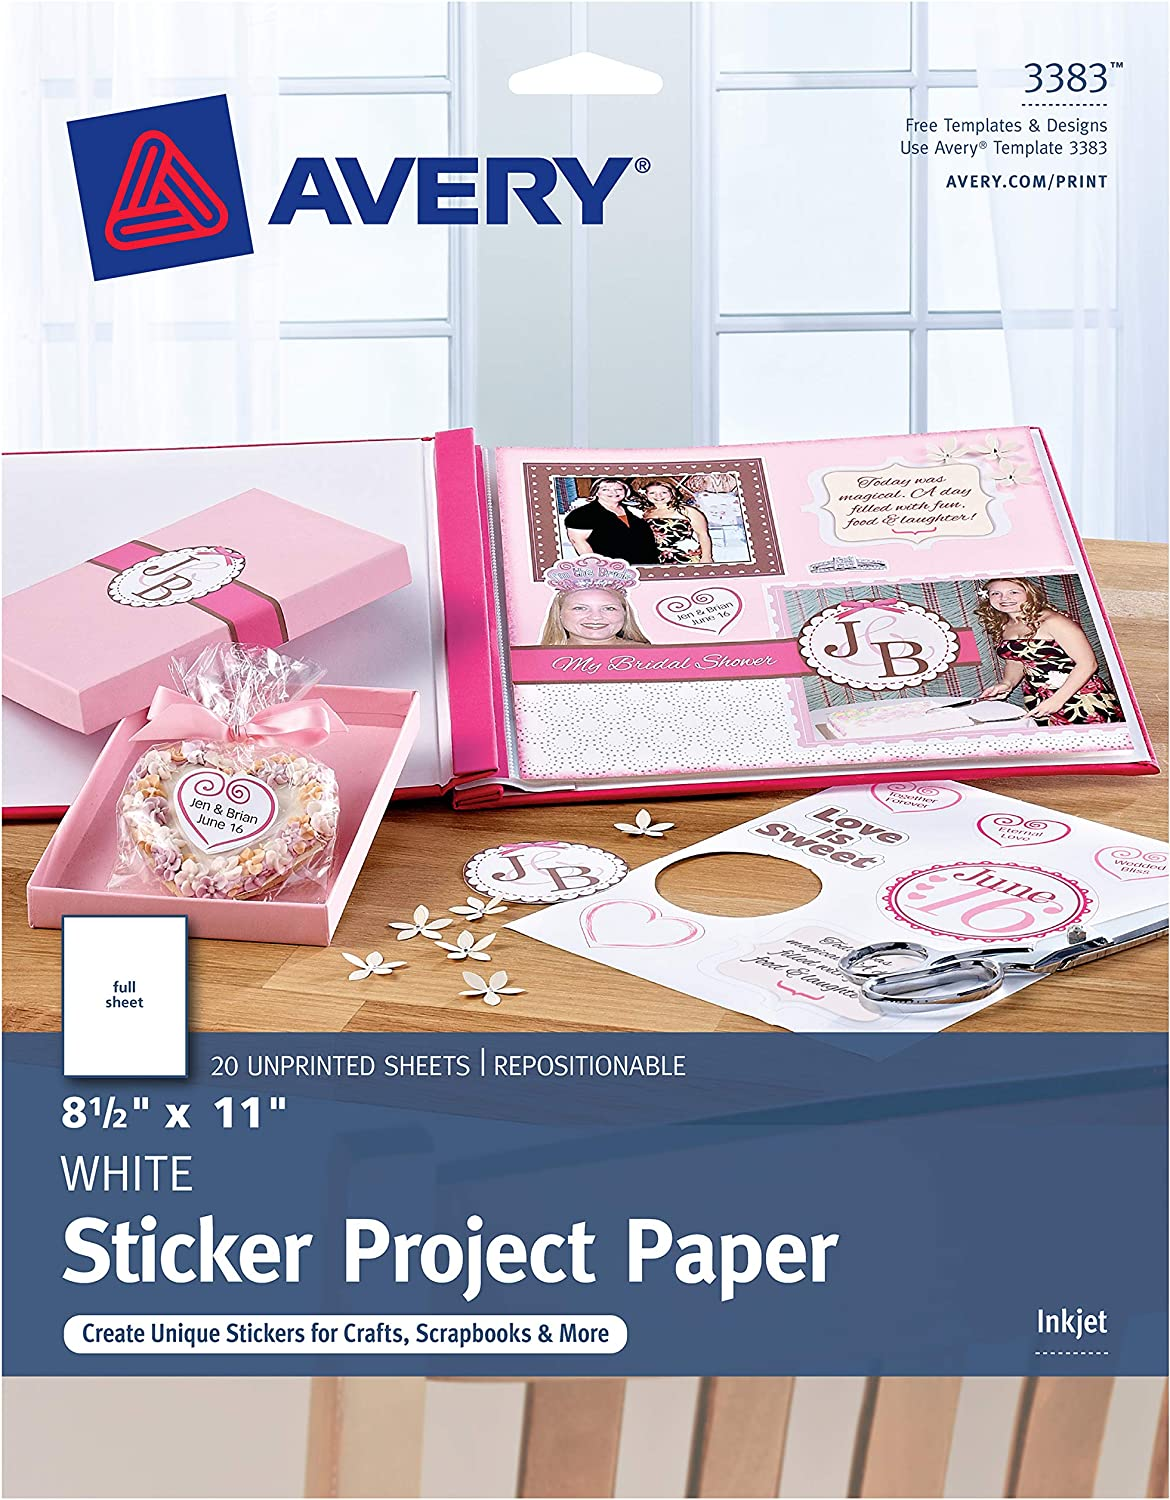 Avery Printable Sticker Paper for Holiday Crafts, Matte White, 8.5 x 11 Inch, Inkjet, 20 Sheets (44383)